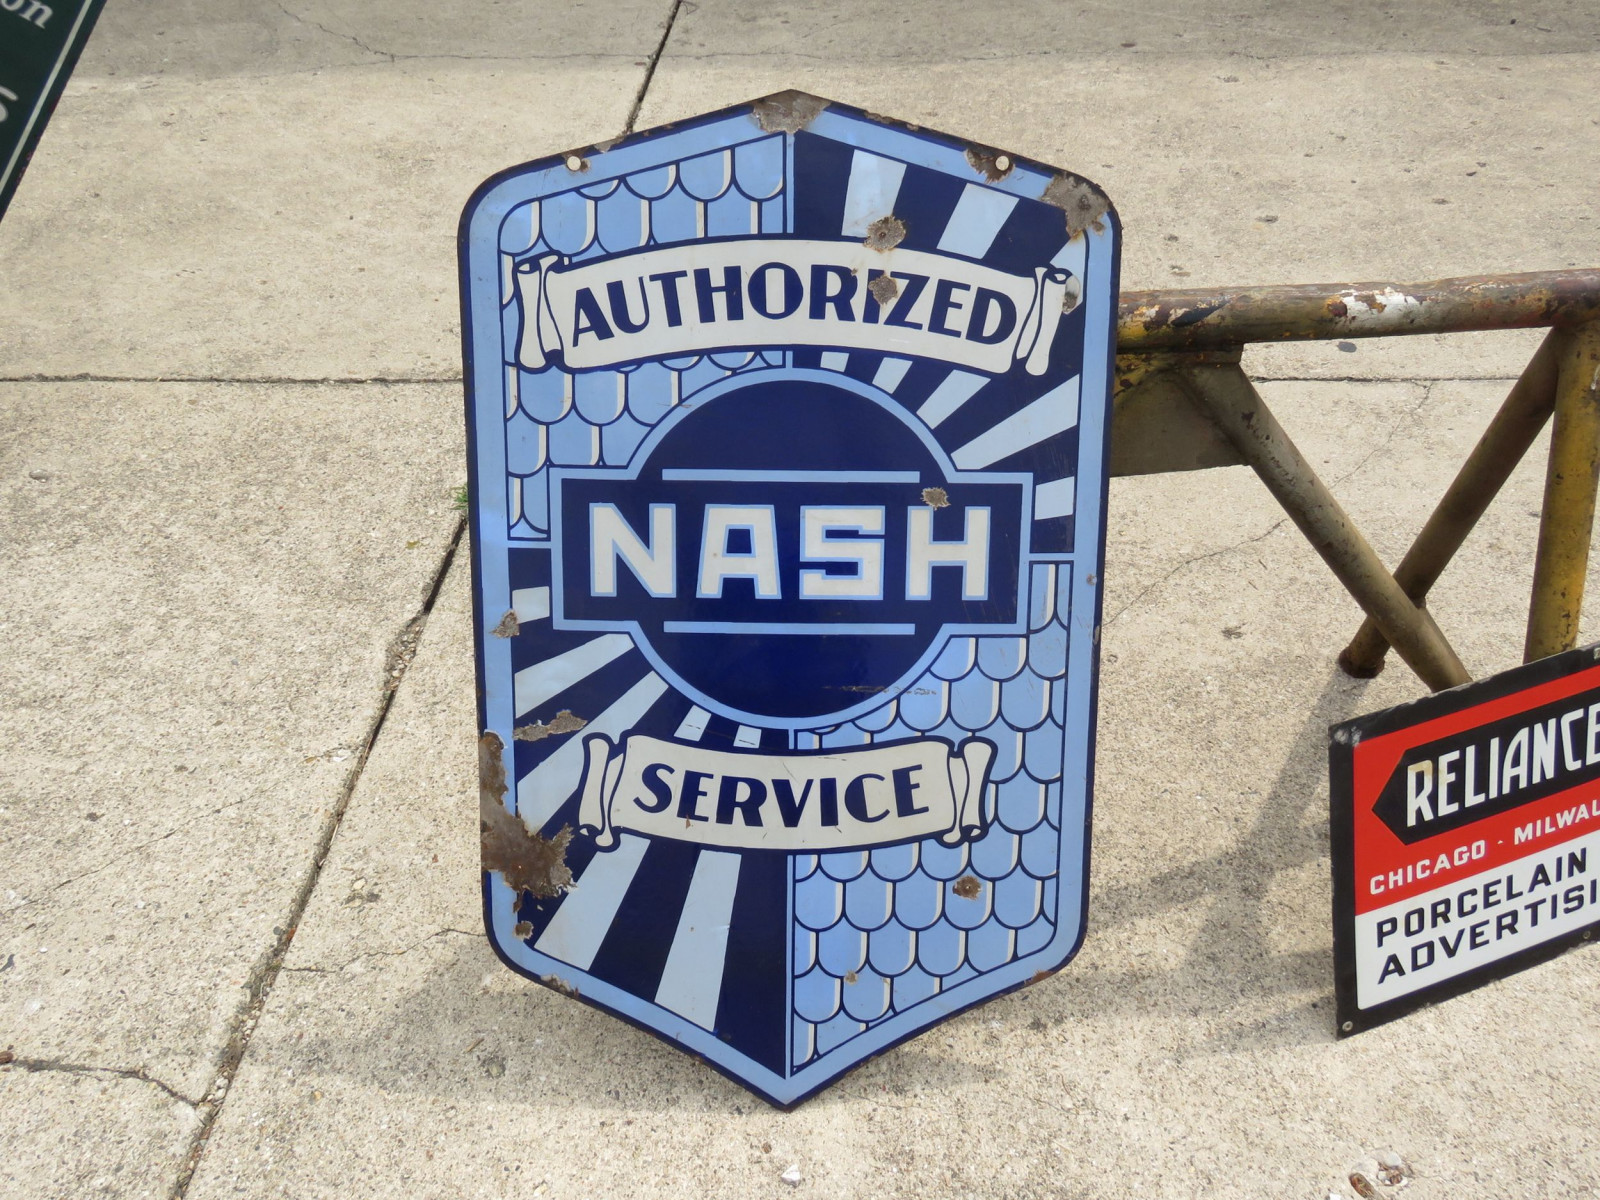 Nash Authorized Service DS Porcelain Sign - Image 2